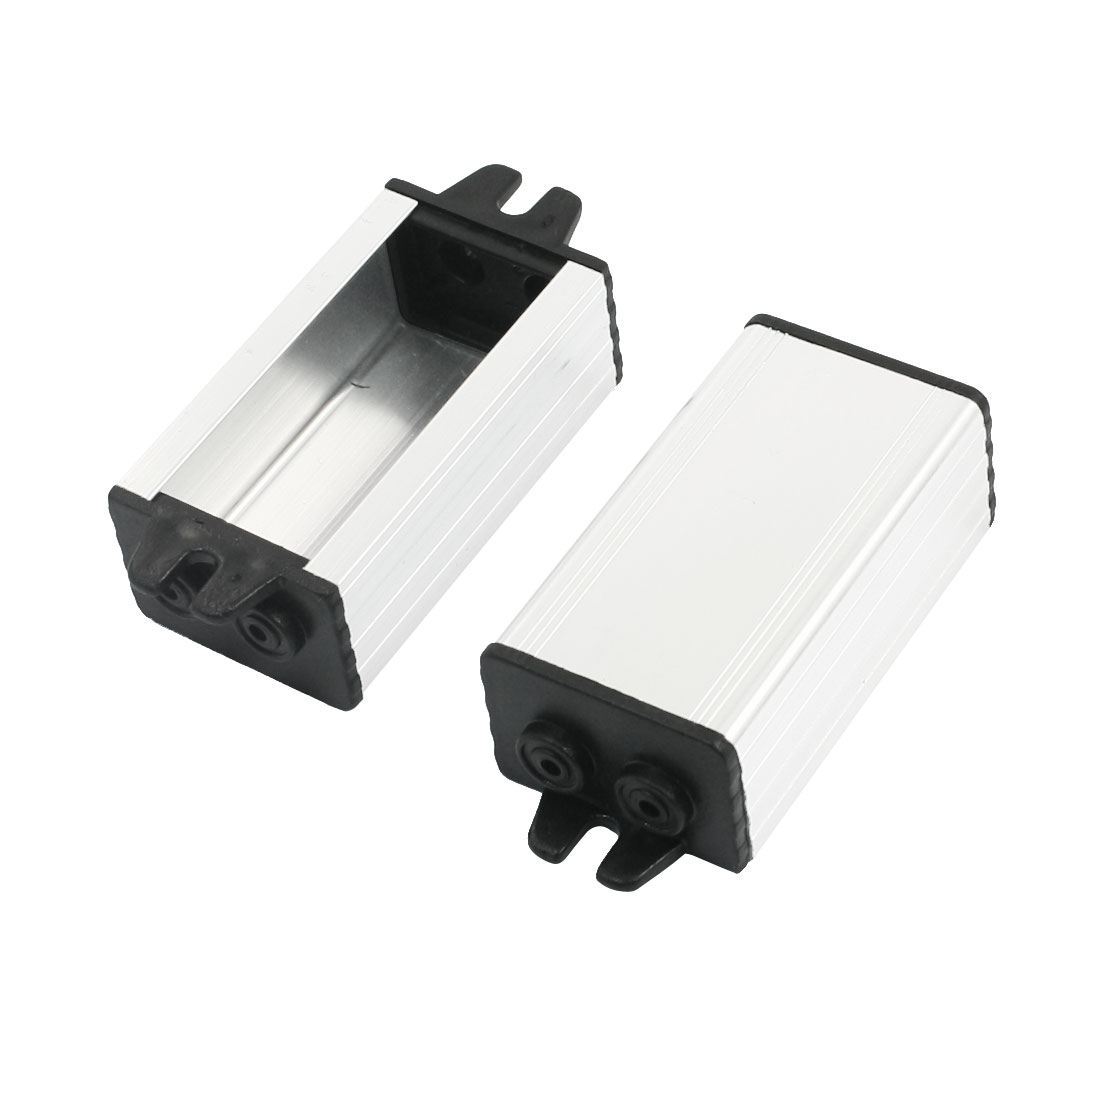 2pcs Waterproof Surface Mount Aluminum Power Supply Driver Housing 55x30x20mm